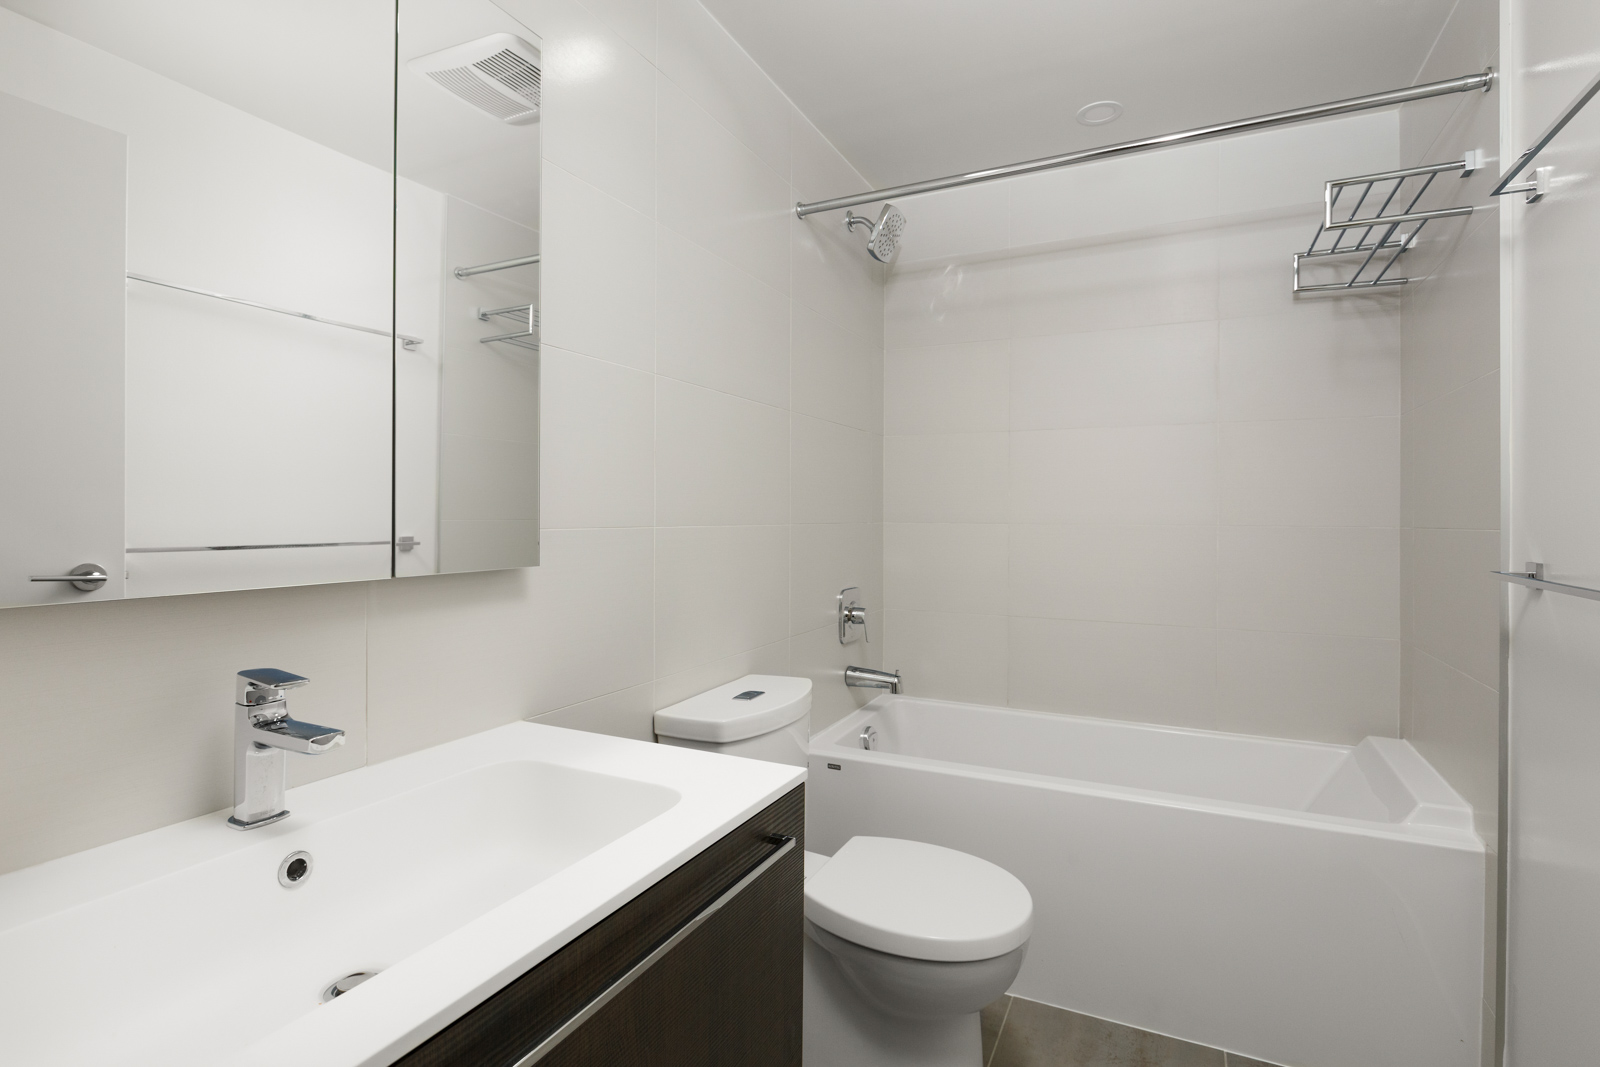 Bathroom with stand up tub inside Vancouver rental condo.